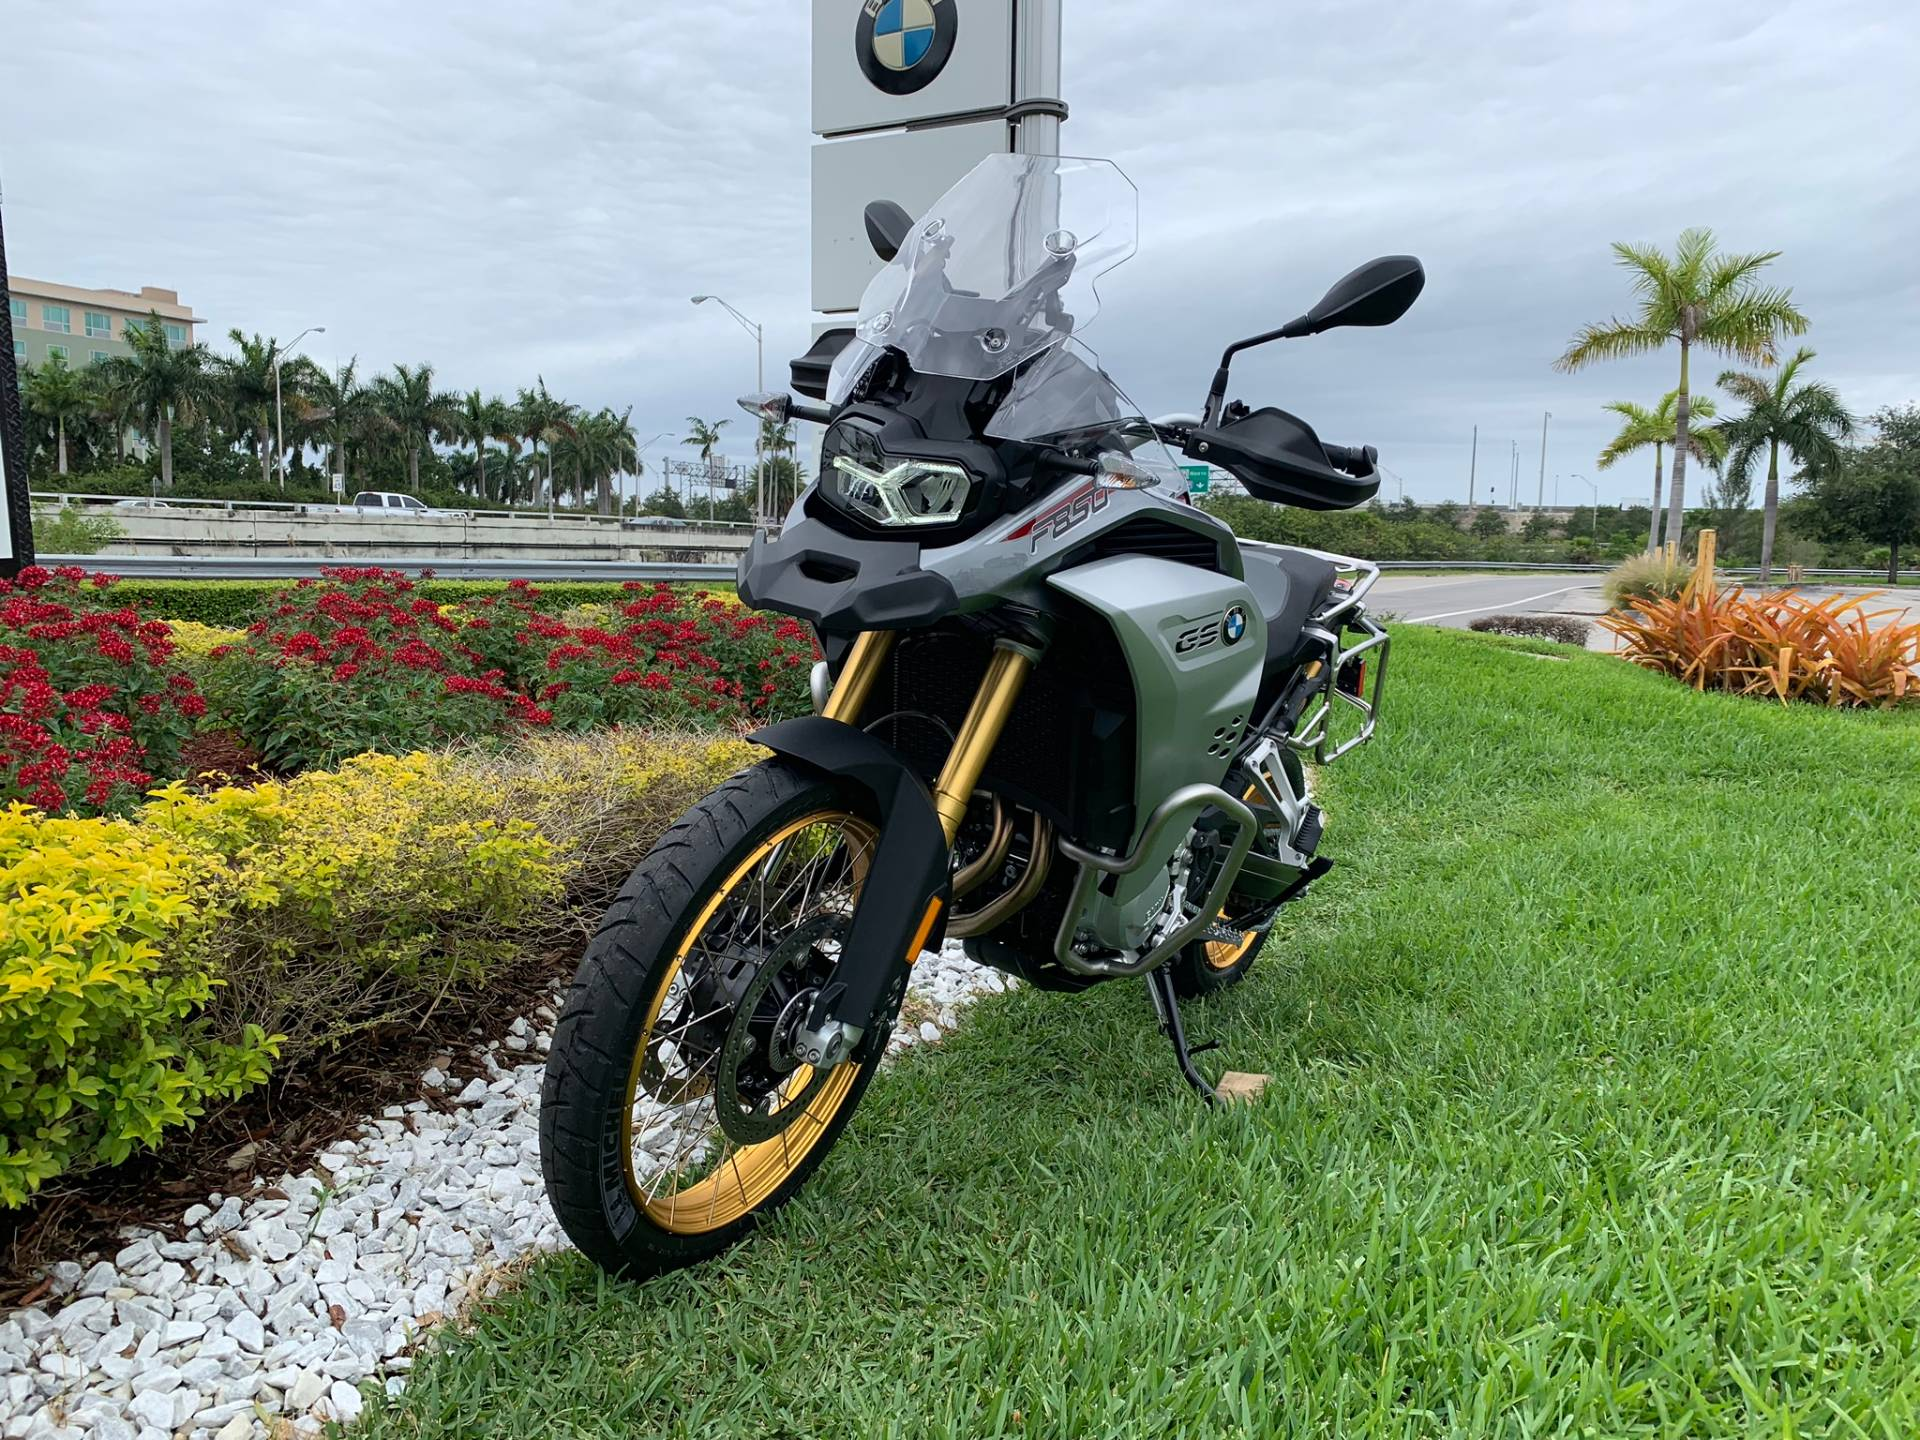 New 2019 BMW F 850 GSA for sale, BMW F 850GSA for sale, BMW Motorcycle F850GSA, new BMW 850 Adventure, Adventure. BMW Motorcycles of Miami, Motorcycles of Miami, Motorcycles Miami, New Motorcycles, Used Motorcycles, pre-owned. #BMWMotorcyclesOfMiami #MotorcyclesOfMiami #MotorcyclesMiami - Photo 5